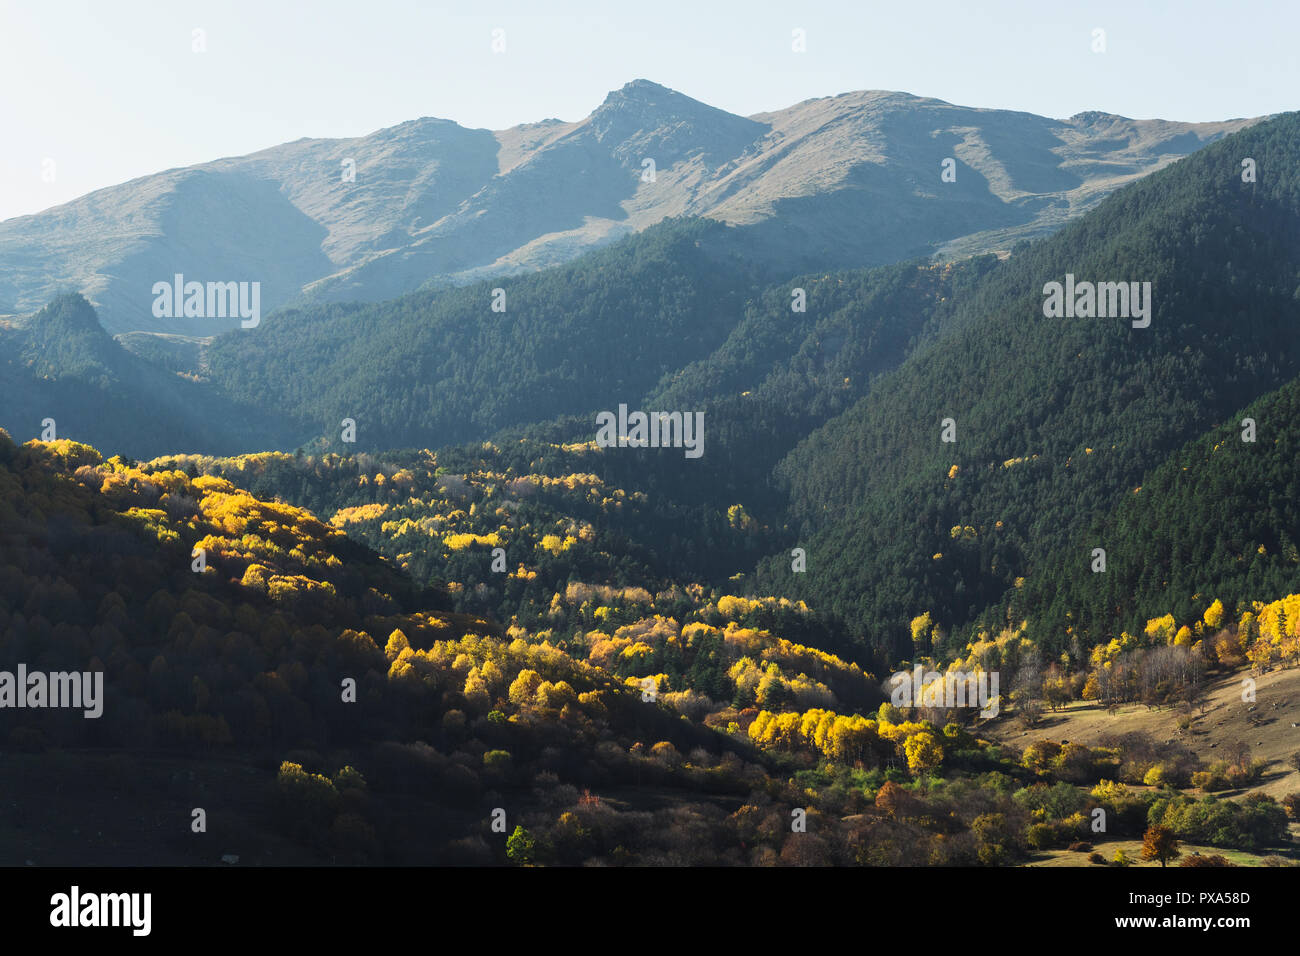 Mountain autumn landscape with colorful forest and high peaks. Epic scene with coniferous and deciduous forest and high peaks. Stock Photo